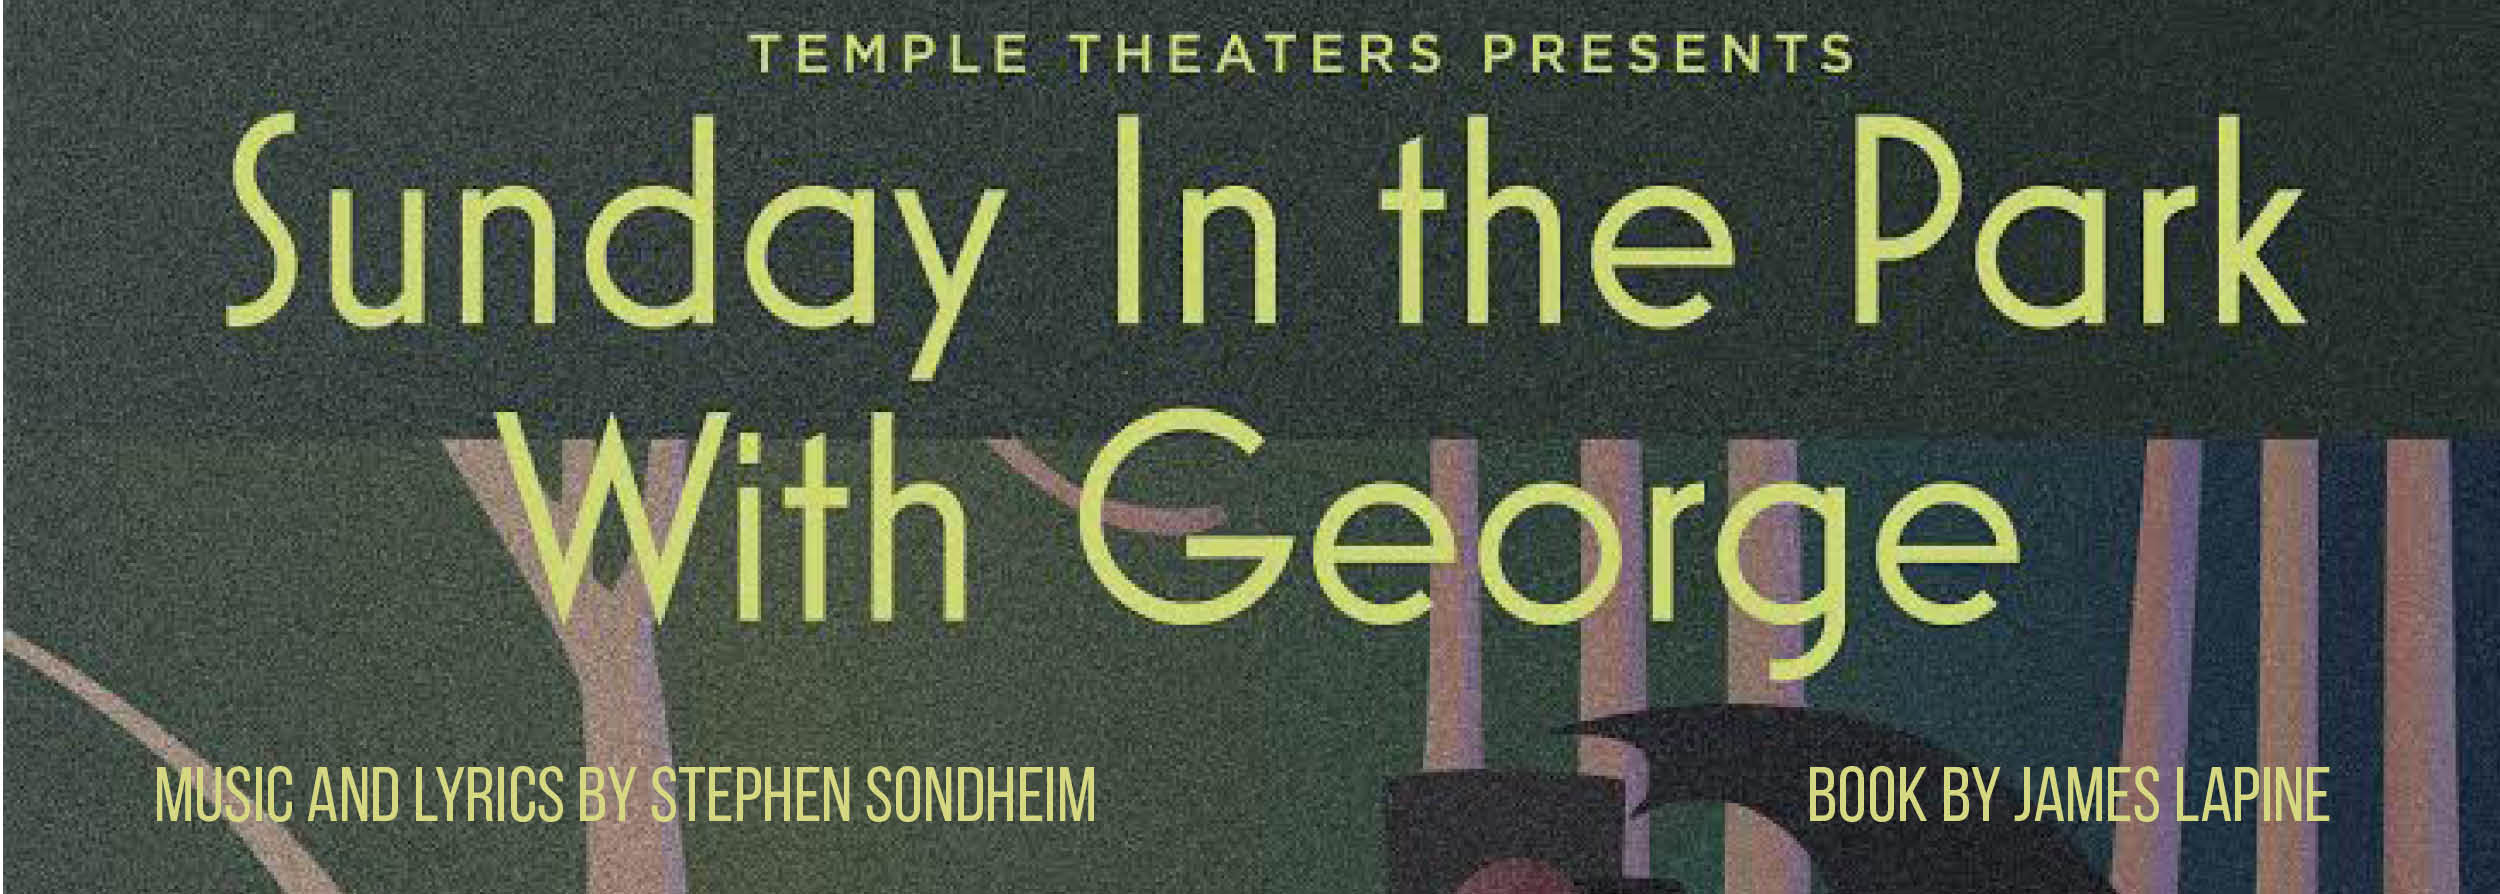 Temple Theaters Presents: Sunday In The Park With George by Stephen Sondheim